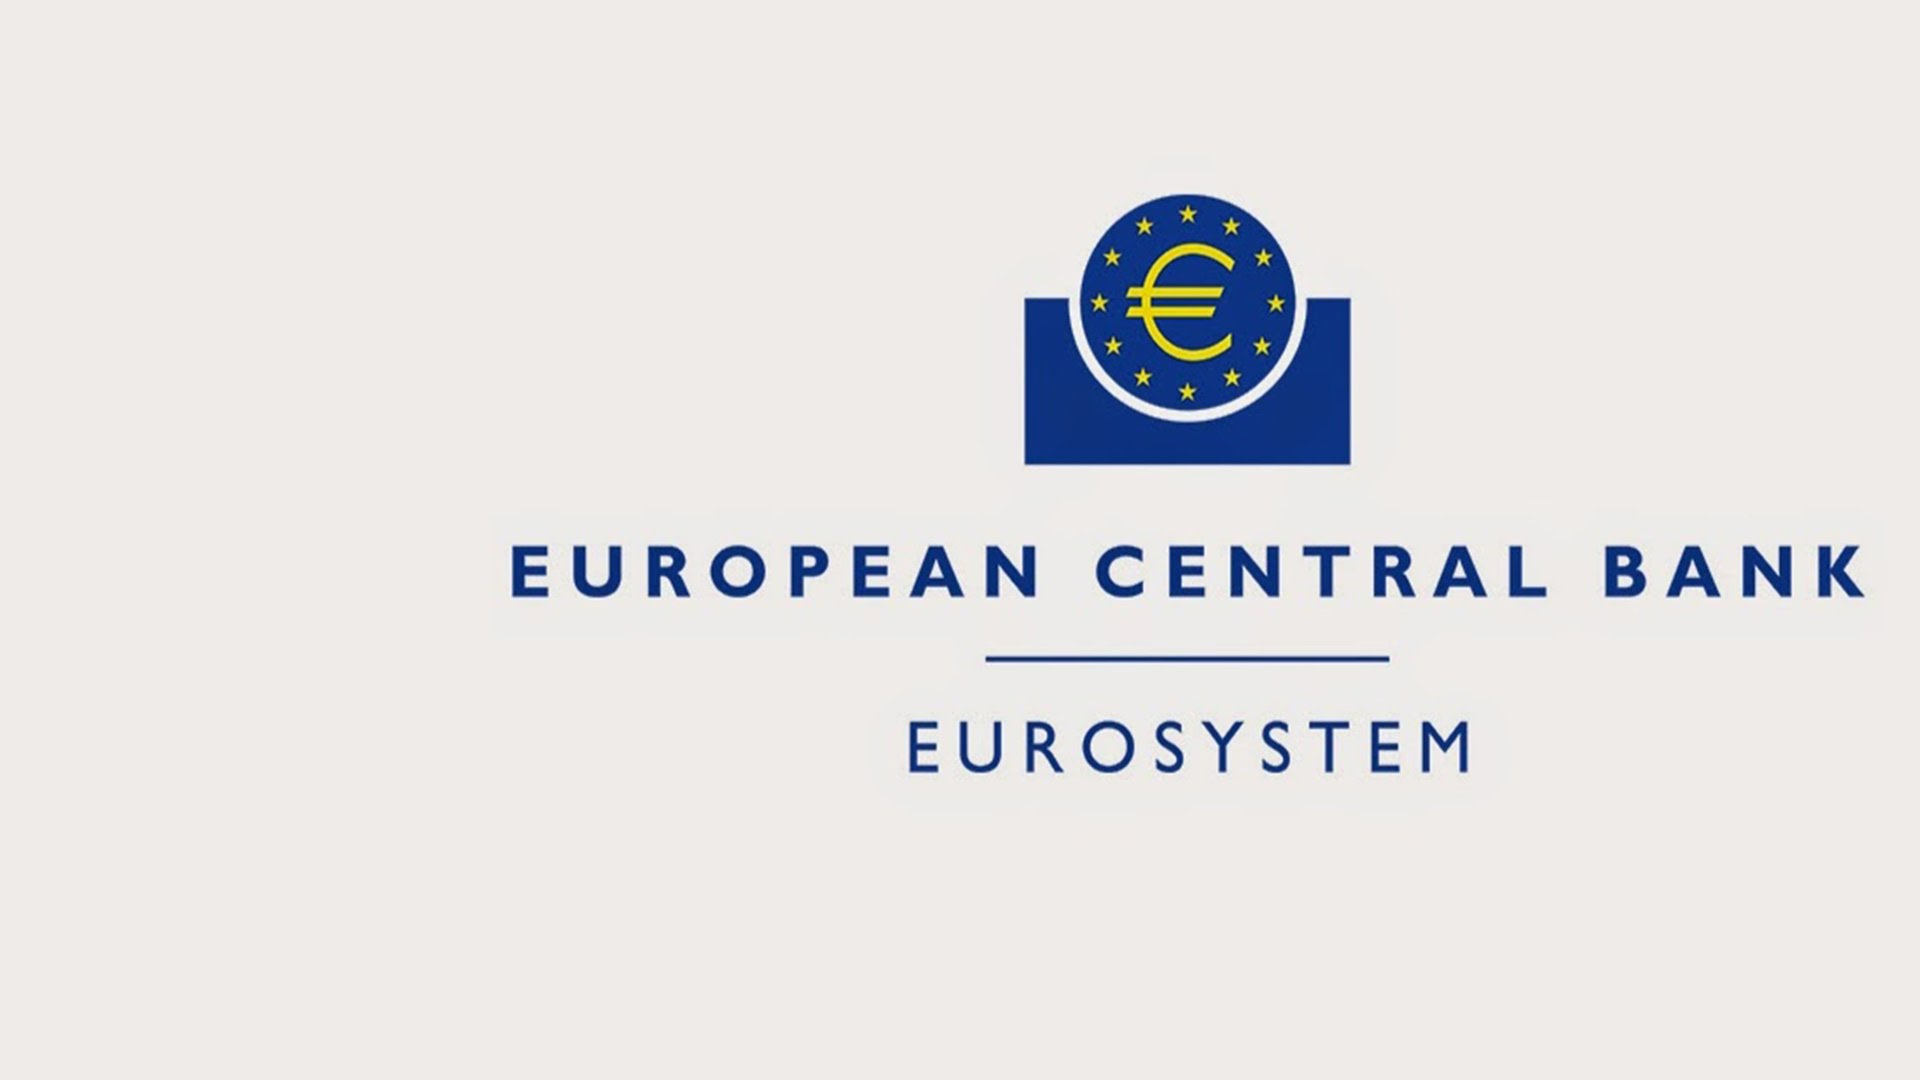 Whattup, forex junkies! On Thursday at am GMT the European Central Bank (ECB) will publish its monetary policy decision for the month of July. A presser will then follow an hour later at pm.